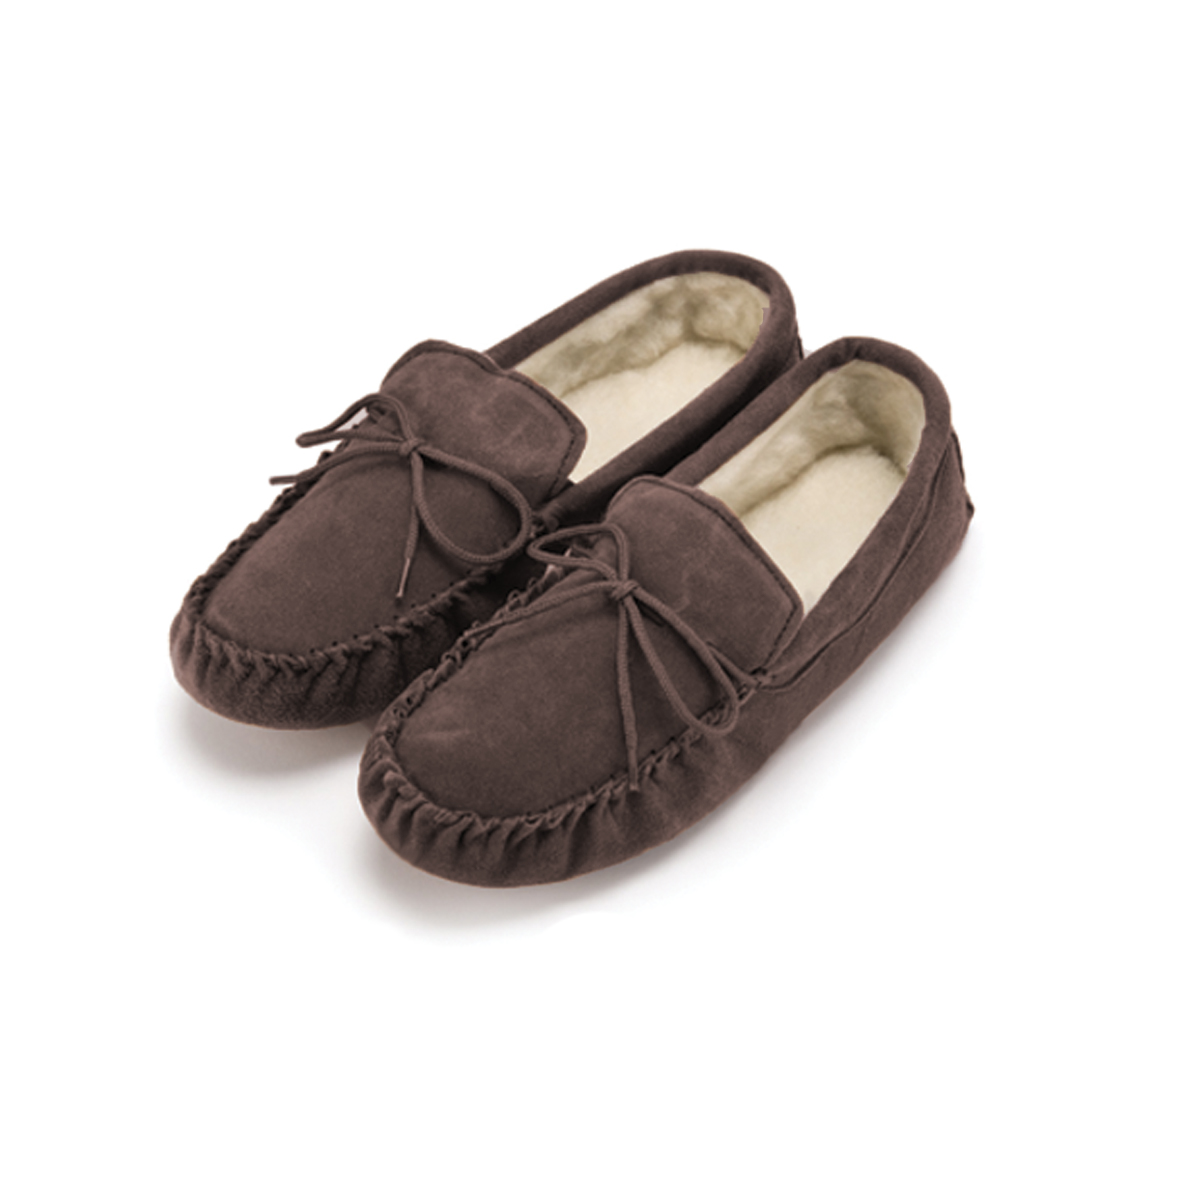 Sheepskin Lined Moccasins with hard sole – GSM1/S